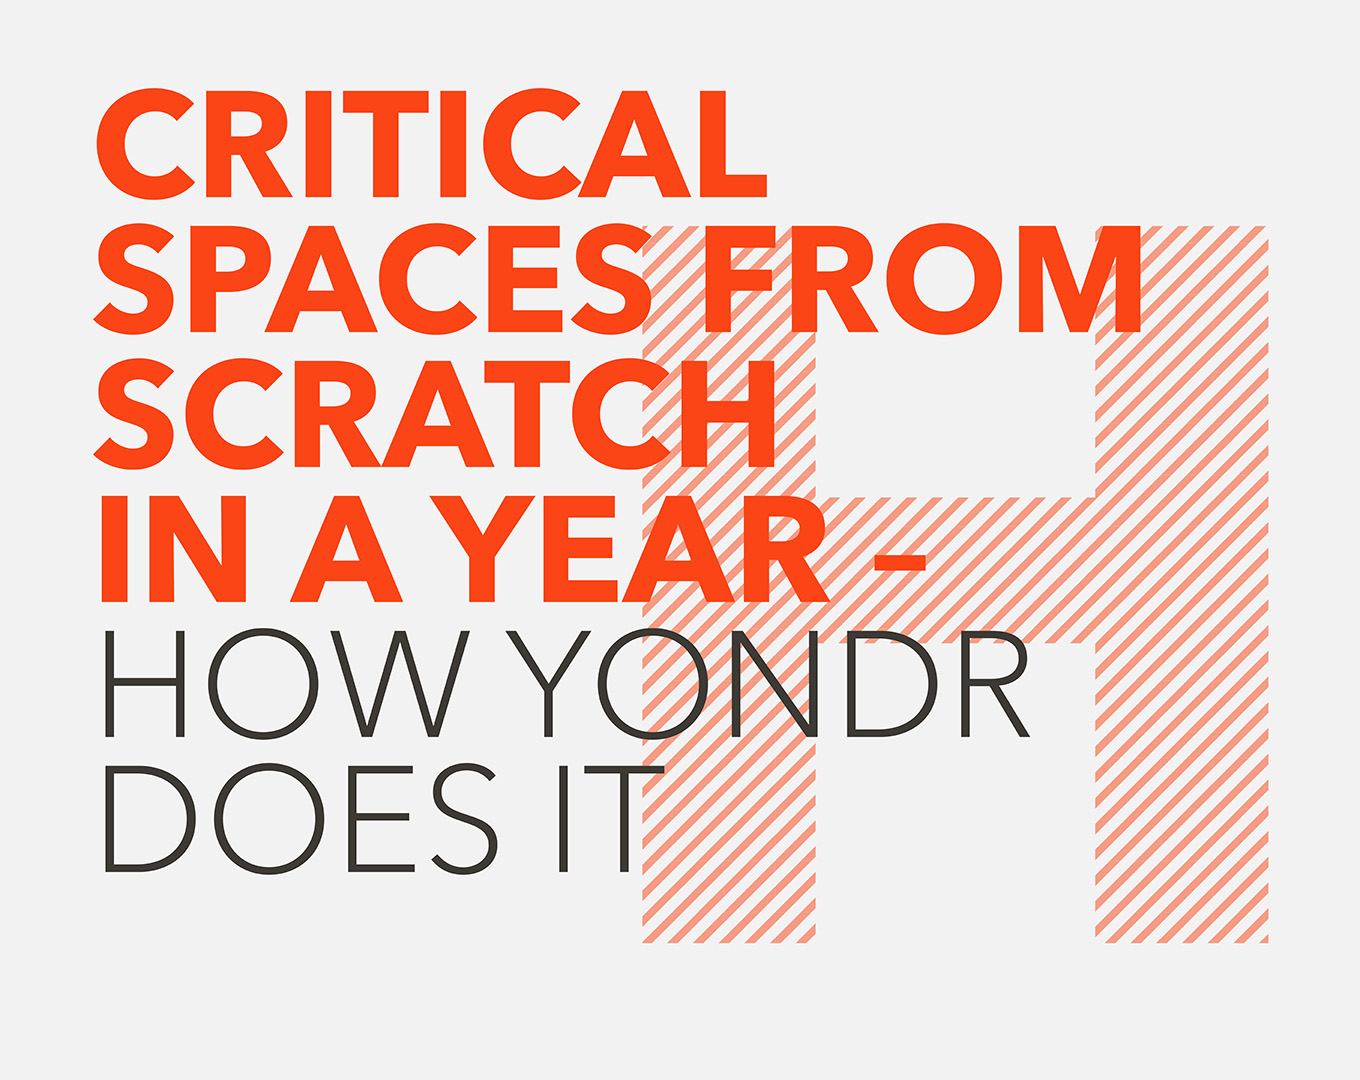 Critical spaces from scratch in a year